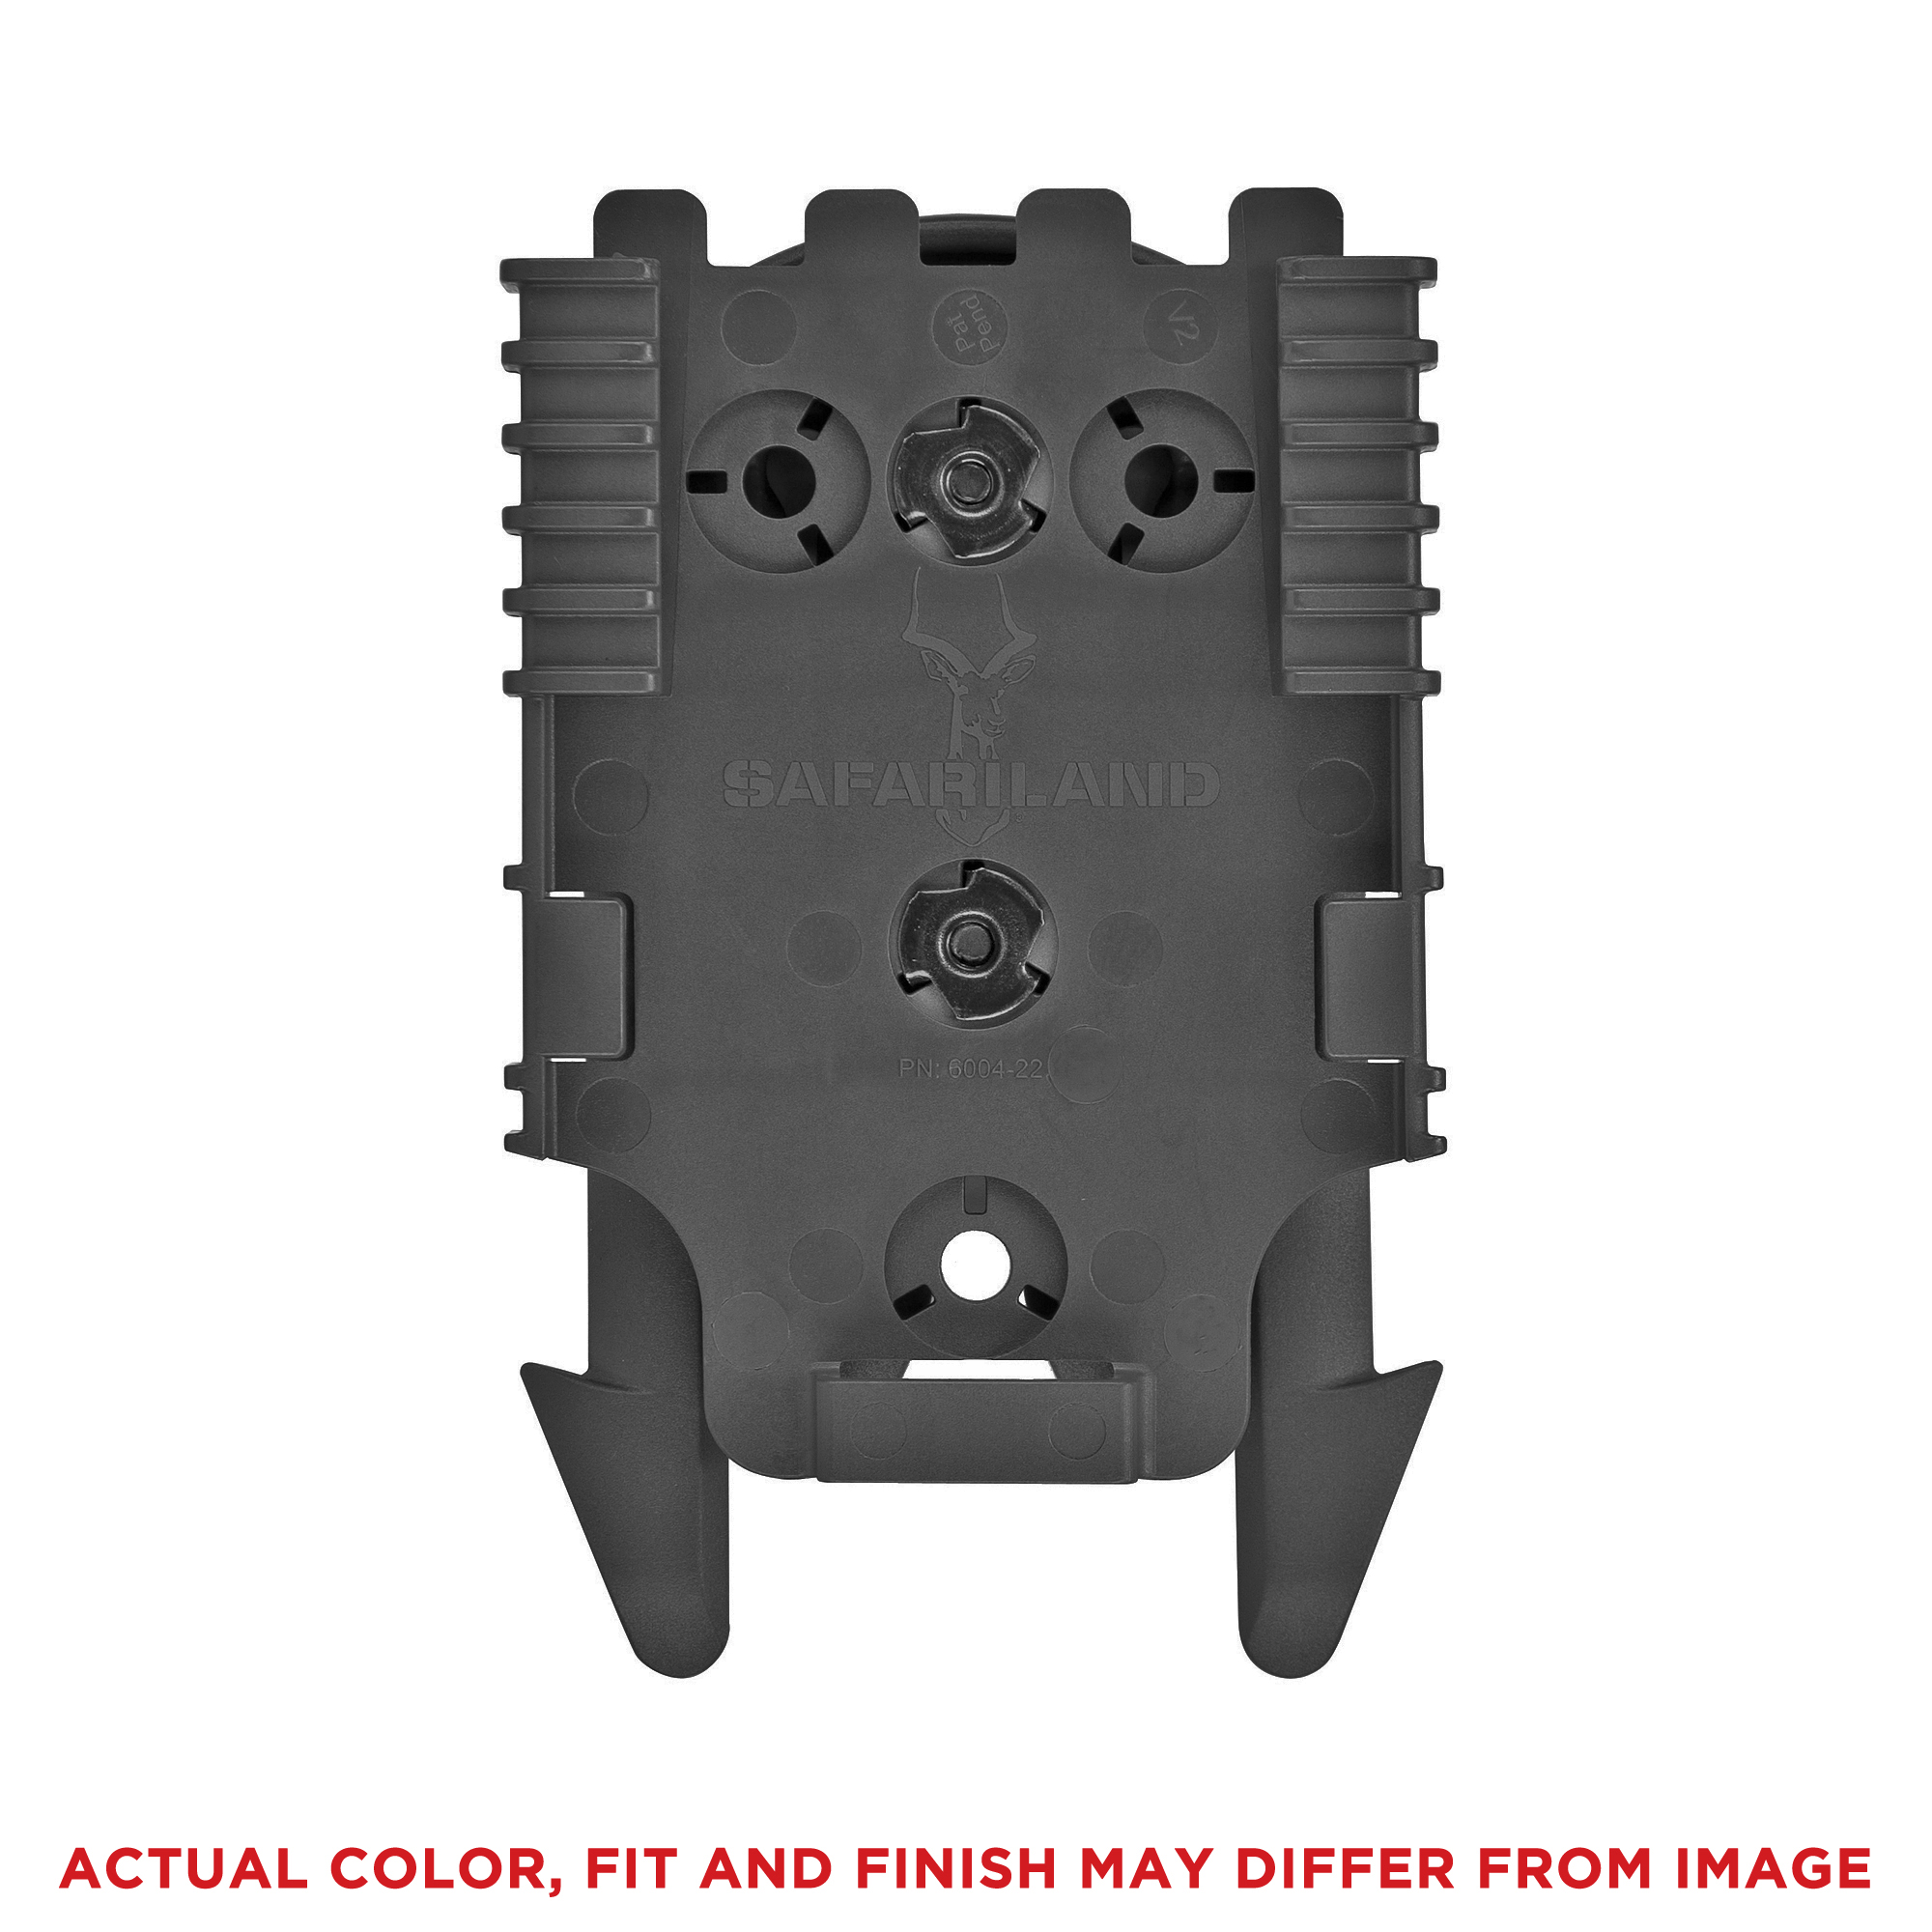 "The MLS 16 Accessory Locking Fork mounts directly to the back of Safariland pouches with the 2-hole pattern. It can then be threaded through MOLLE loops or connected to the QLS 22 Receiver Plate. Use with this receiver plates allows for quick transfer of gear between attachment points such as a MOLLE vest"" belt loop"" tactical leg shroud or other stable platform. This fork is also required when use of the smaller ELS plates is warranted. This injection molded piece is adjustable to a variety of angles for convenient carry. Rearrange gear quickly and easily without the use of tools. It is designed to break away at 140 lbs. per military specifications."